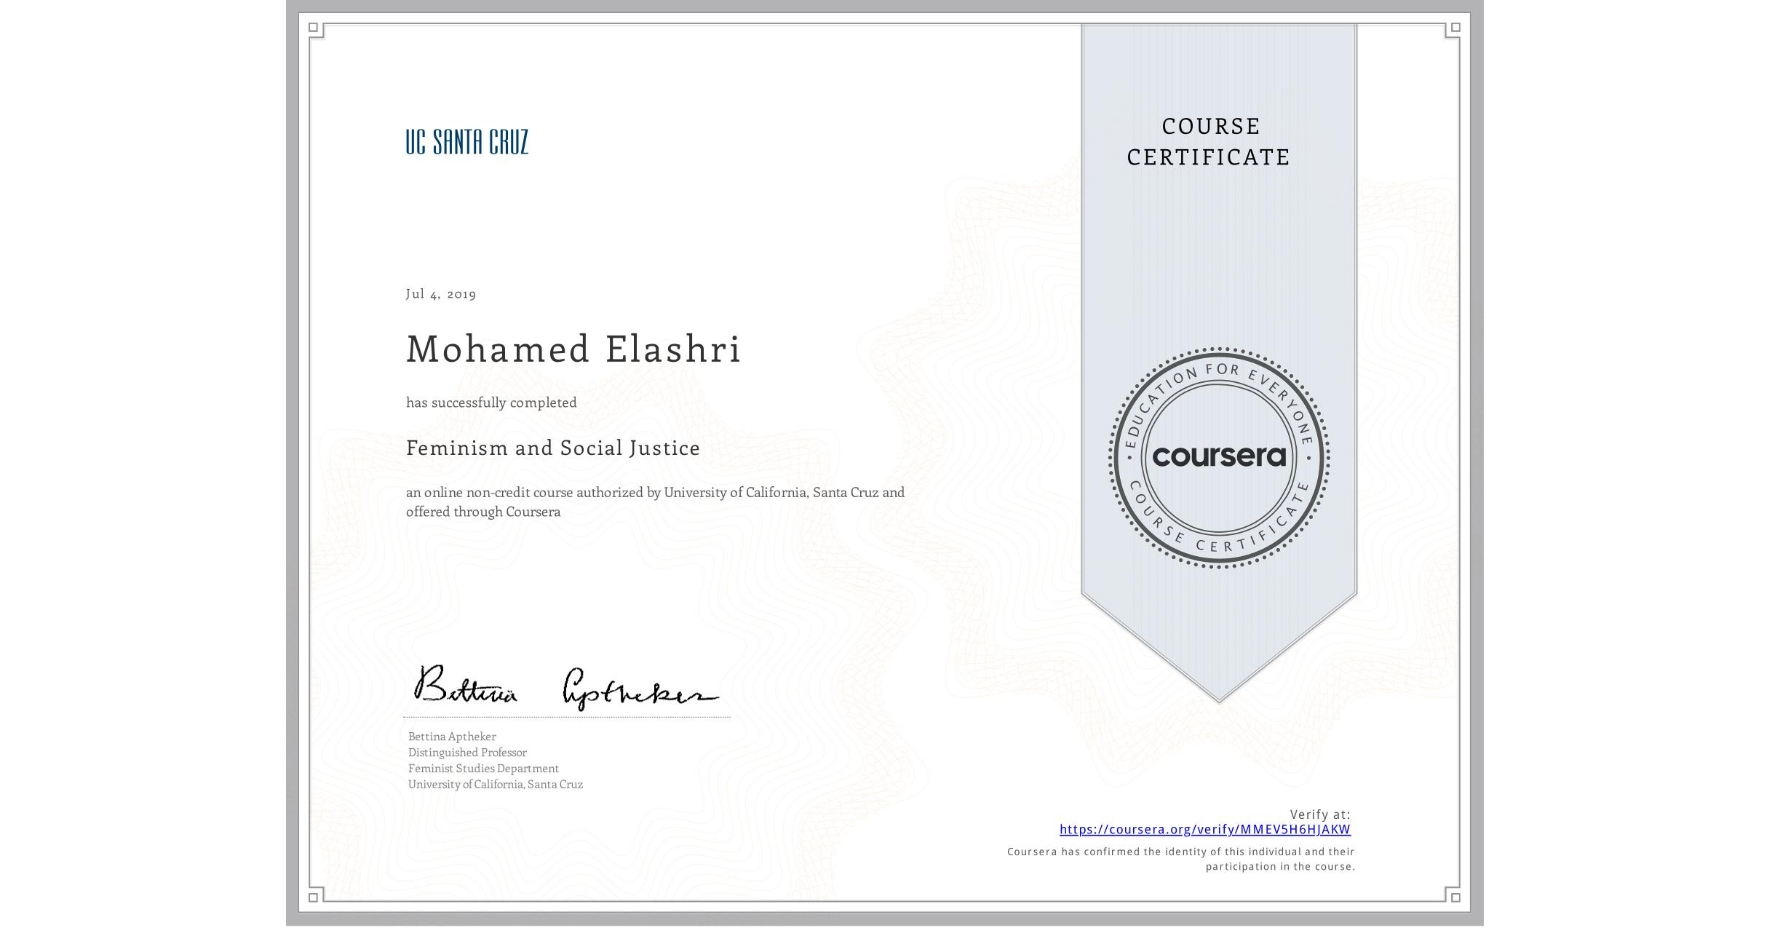 View certificate for Mohamed Elashri, Feminism and Social Justice, an online non-credit course authorized by University of California, Santa Cruz and offered through Coursera